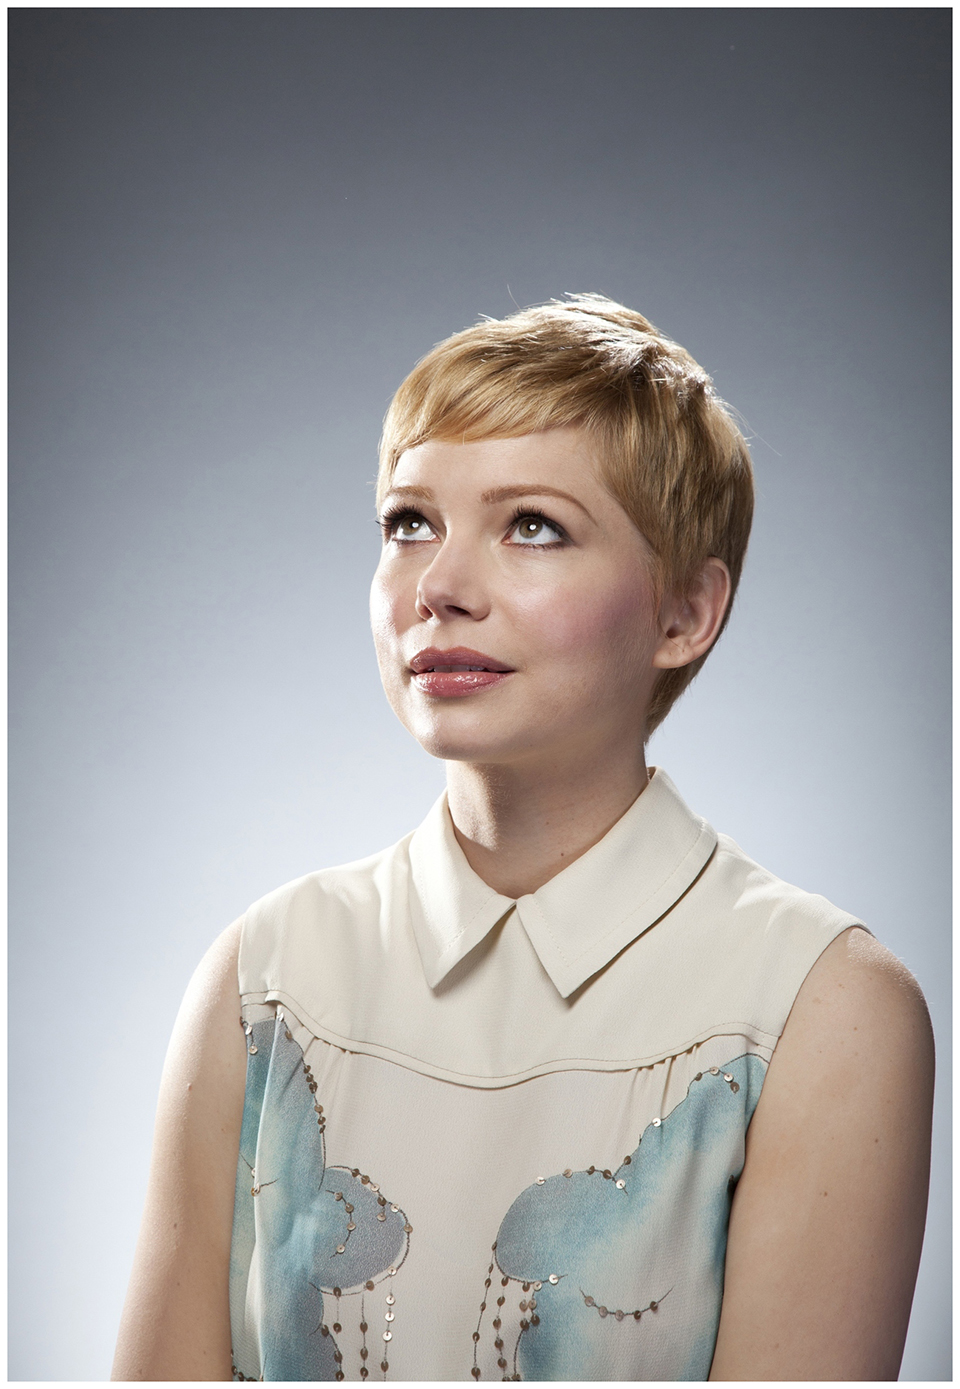 michelle-williams-photographed-by-douglas-kirkland-for-2011-academy-award-nominee-on-february-2-2012